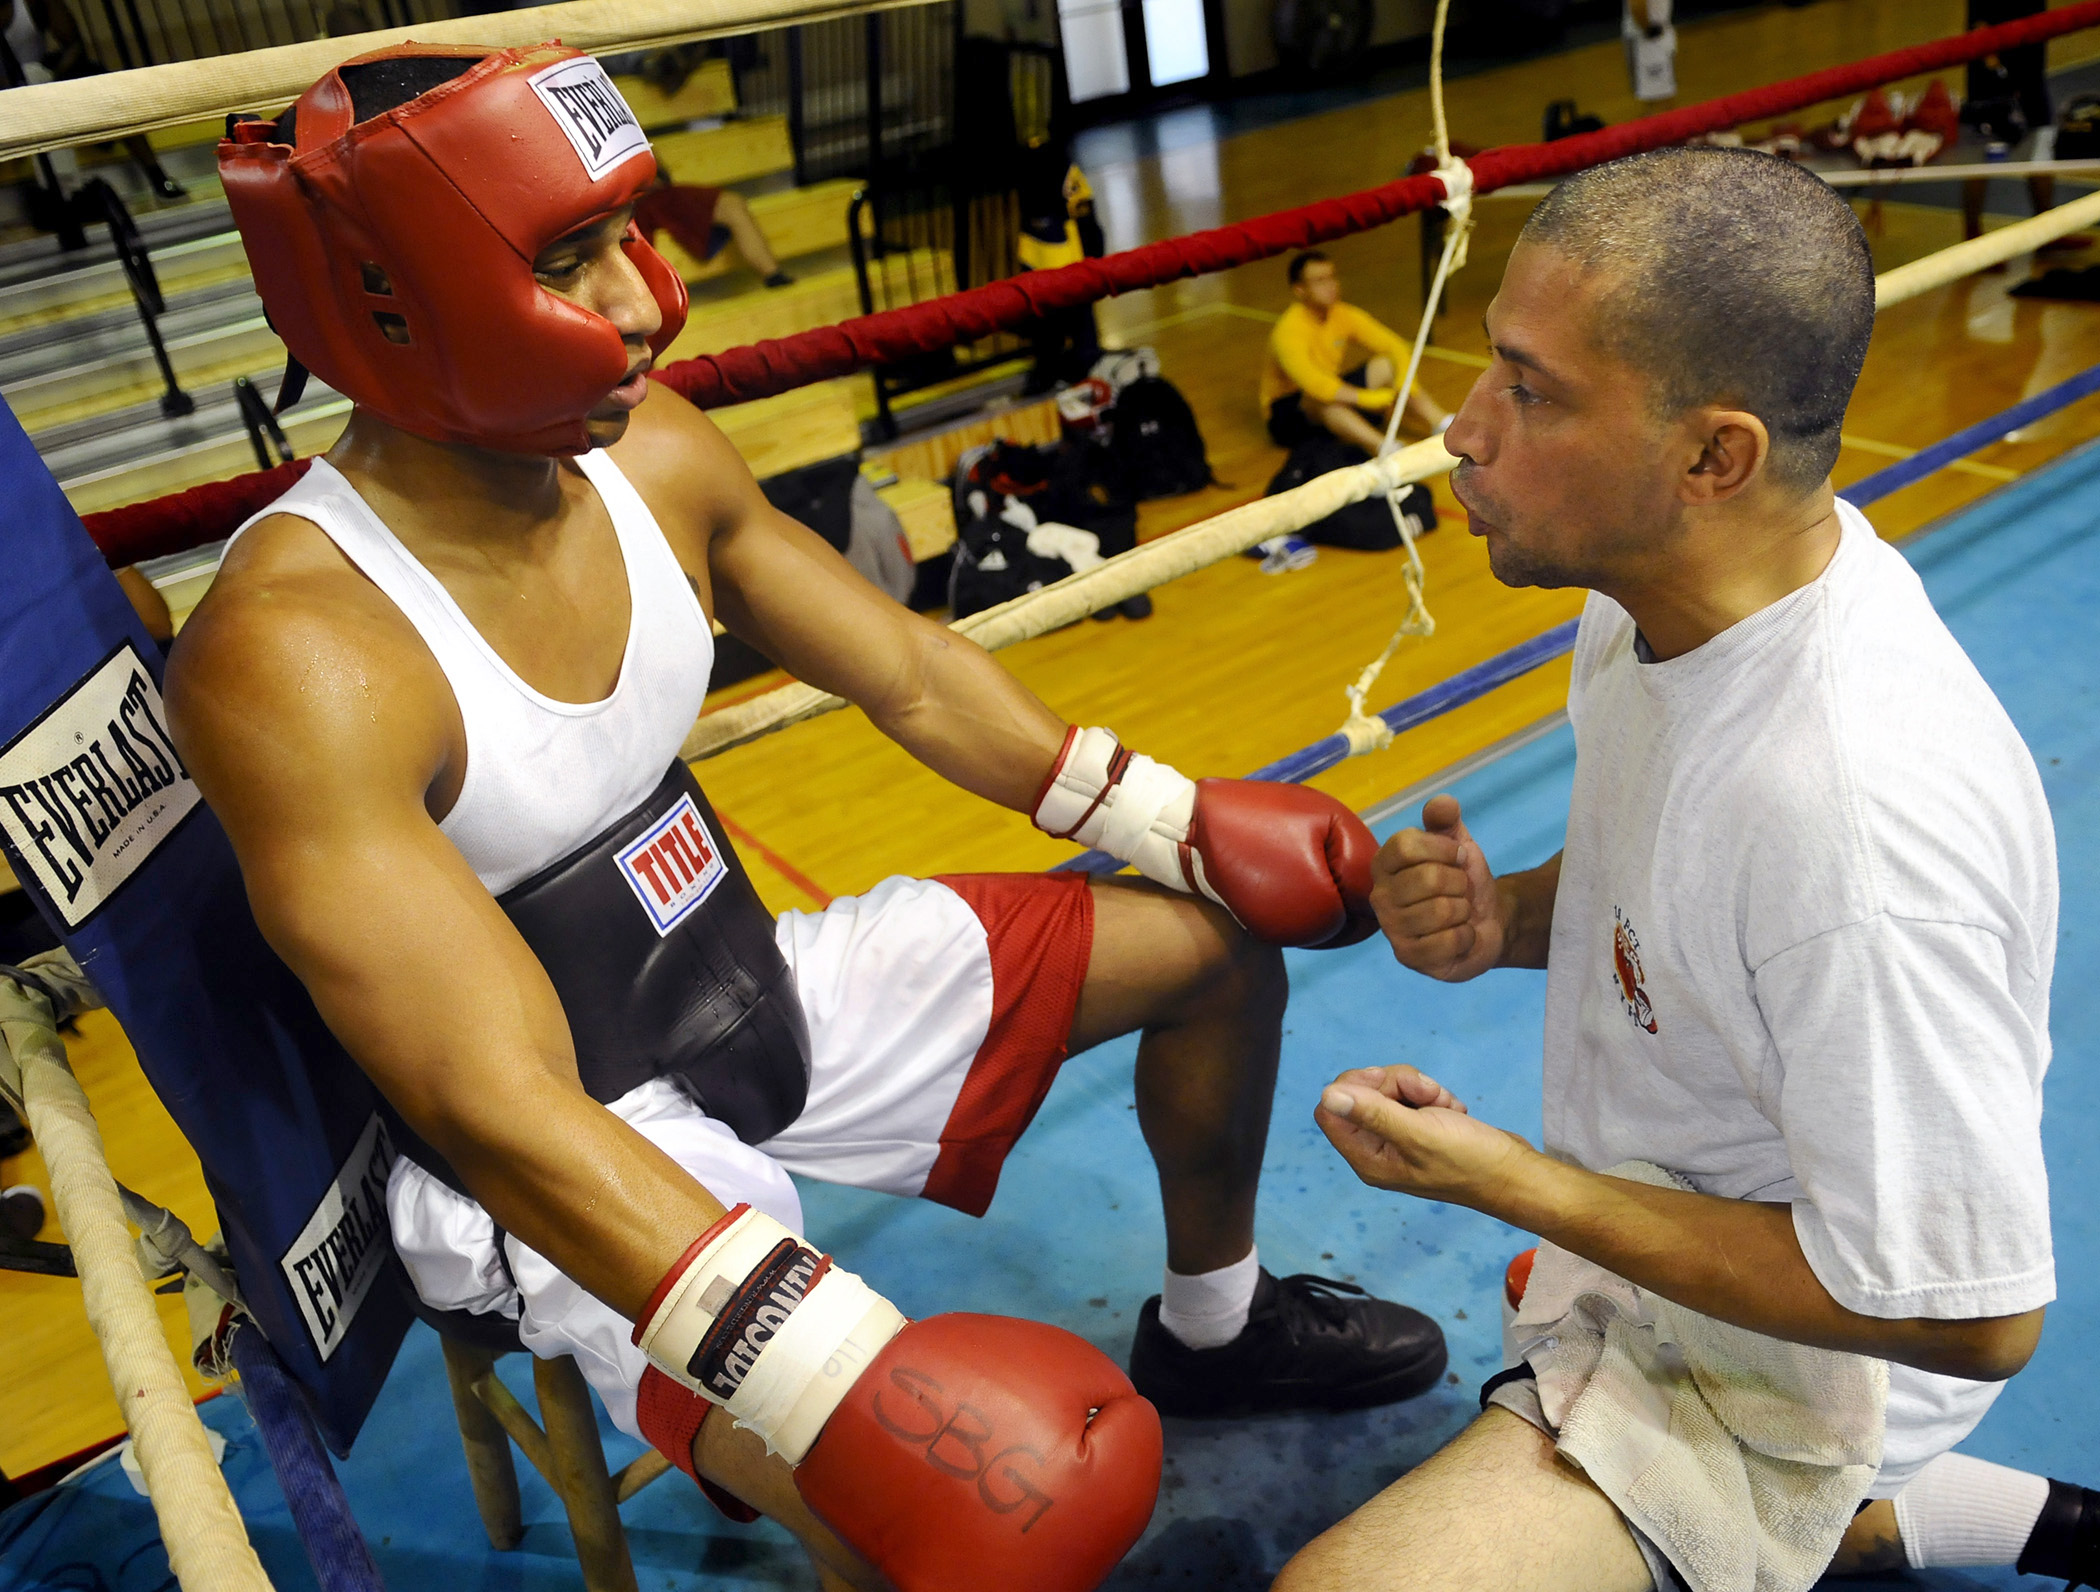 US_Navy_081012-N-5345W-033_Dave_Cruz,_right,_an_assistant_coach_with_757_Boxing_Club_in_Virginia_Beach,_Va.,_gives_his_fighter_pointers_between_rounds_during_a_sparring_session_at_the_All-Navy_Boxing_Team_mini-camp_at_R.jpg